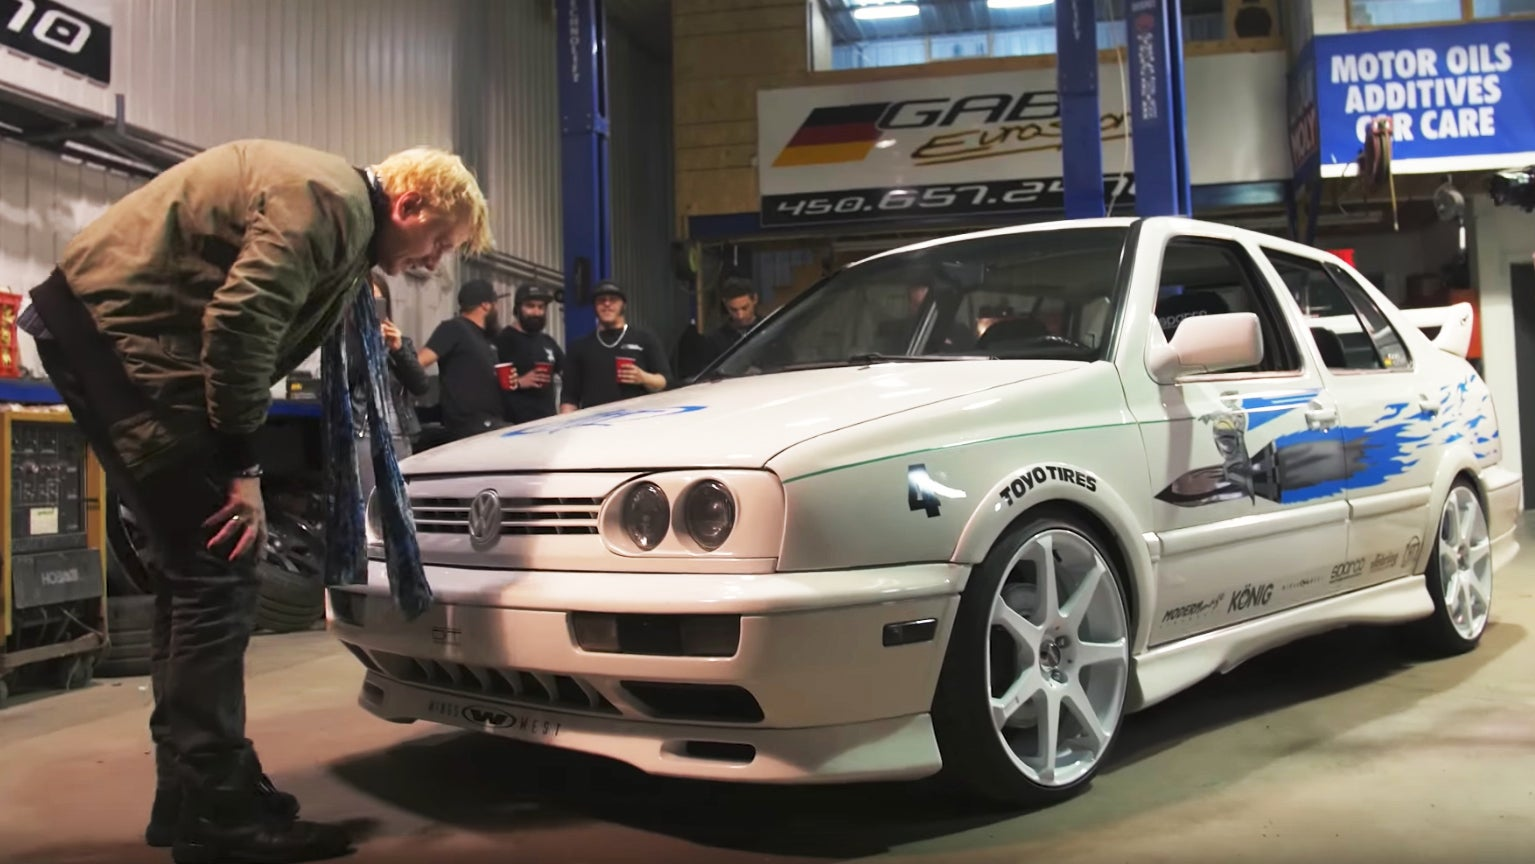 Jesse From The Fast And The Furious Reunites With His Jetta 16 Years Later